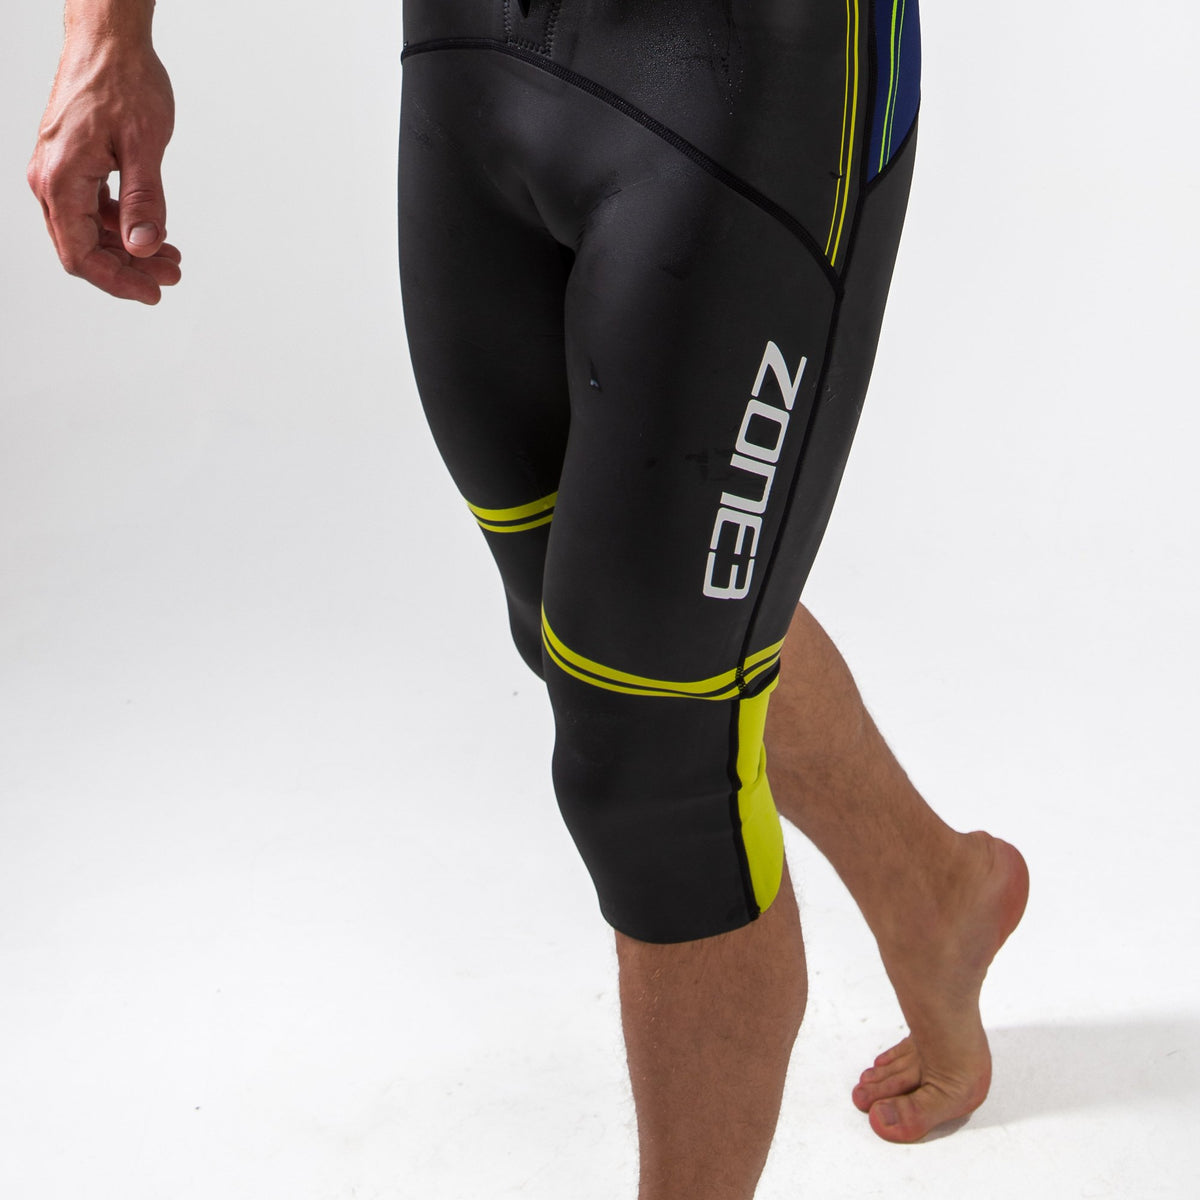 Men's Swim-Run Versa Wetsuit leg